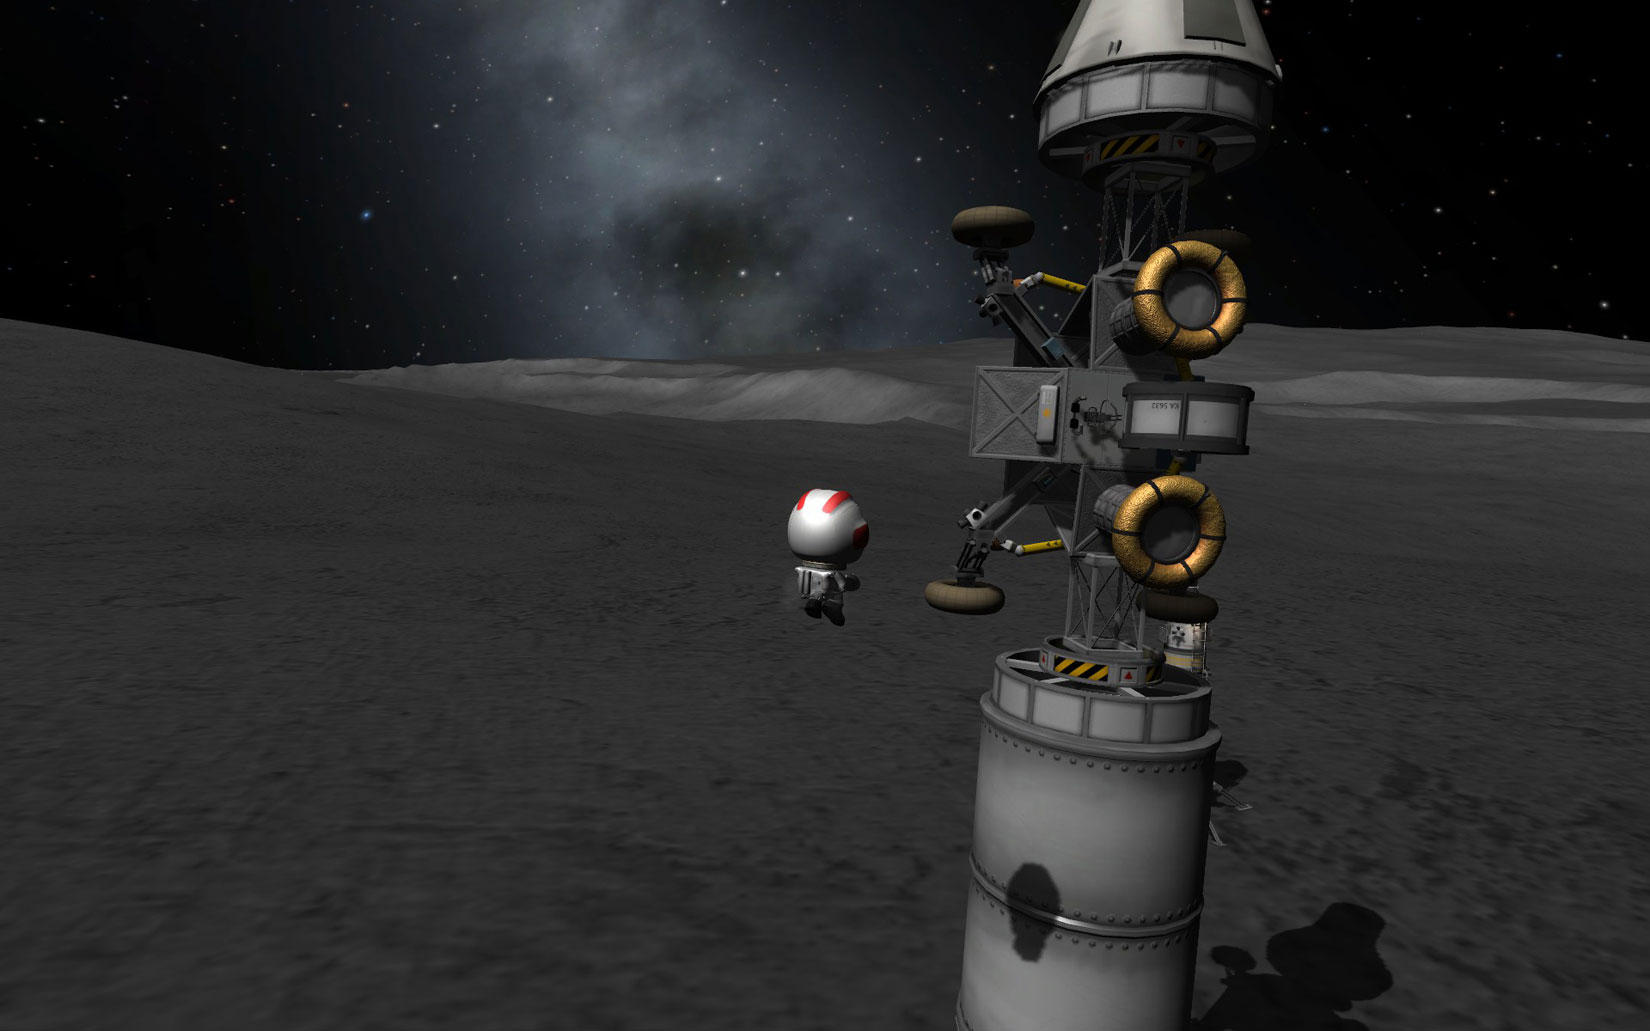 Kerbal Space Program: Manned Moon Rover mission - SimHQ Forums